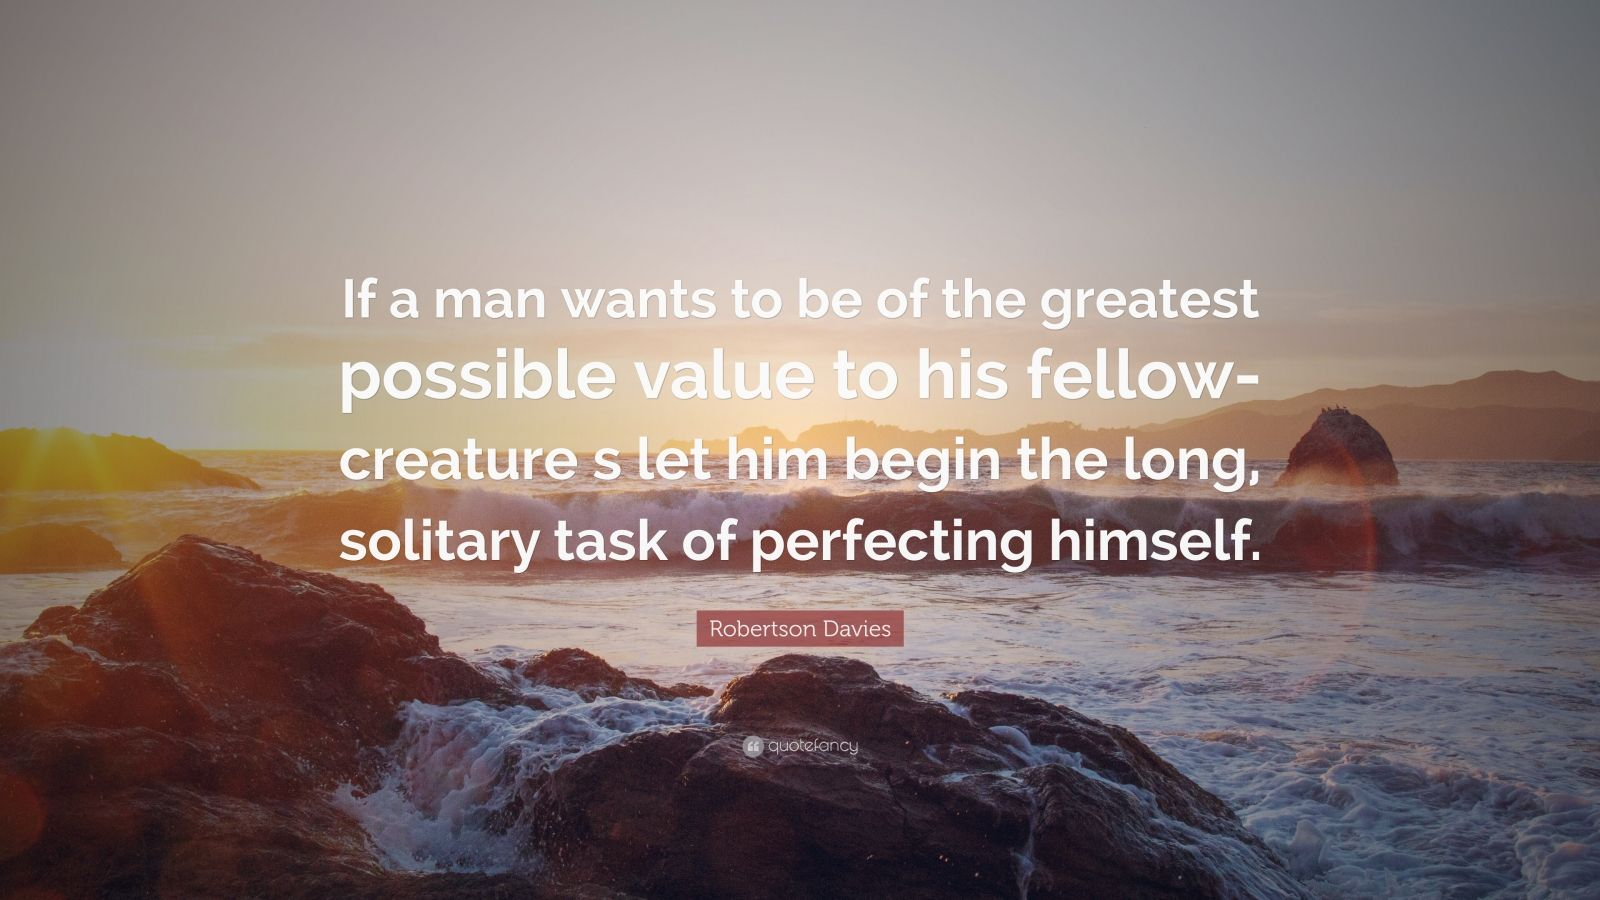 """Robertson Davies Quote: """"If a man wants to be of the greatest possible value to his fellow-creature s let him begin the long, solitary task of perfecting himself."""""""